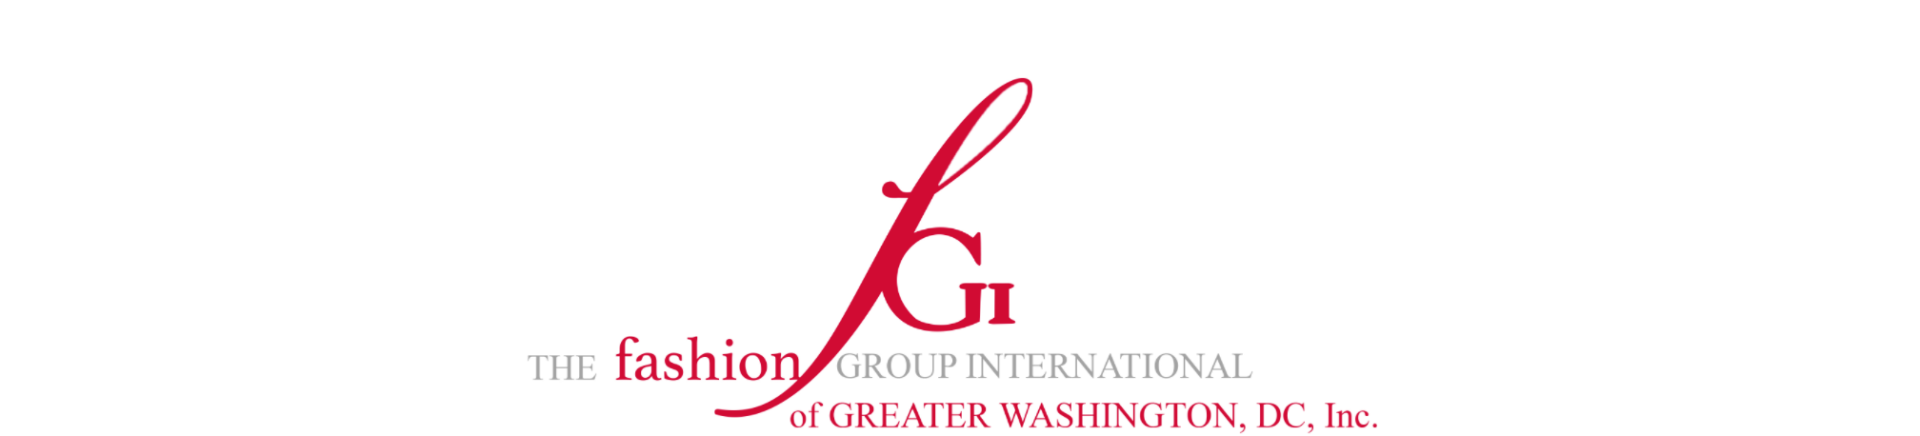 Fashion Group International® of Greater Washington, DC, Inc.